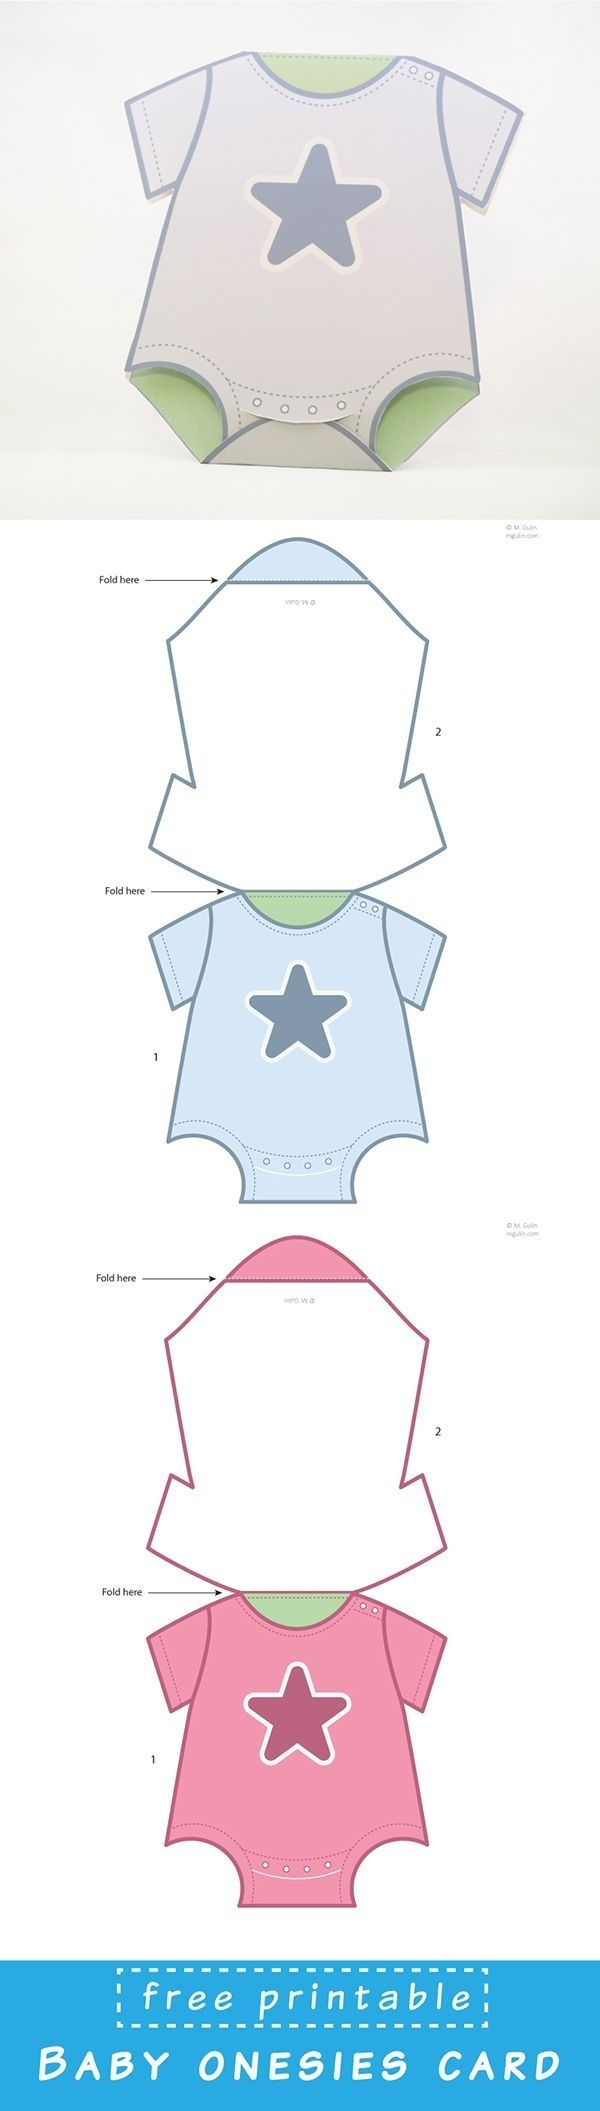 Baby Onesies Cards   Projects To Try   Baby Shower Cards, Baby, Baby - Free Printable Onesies